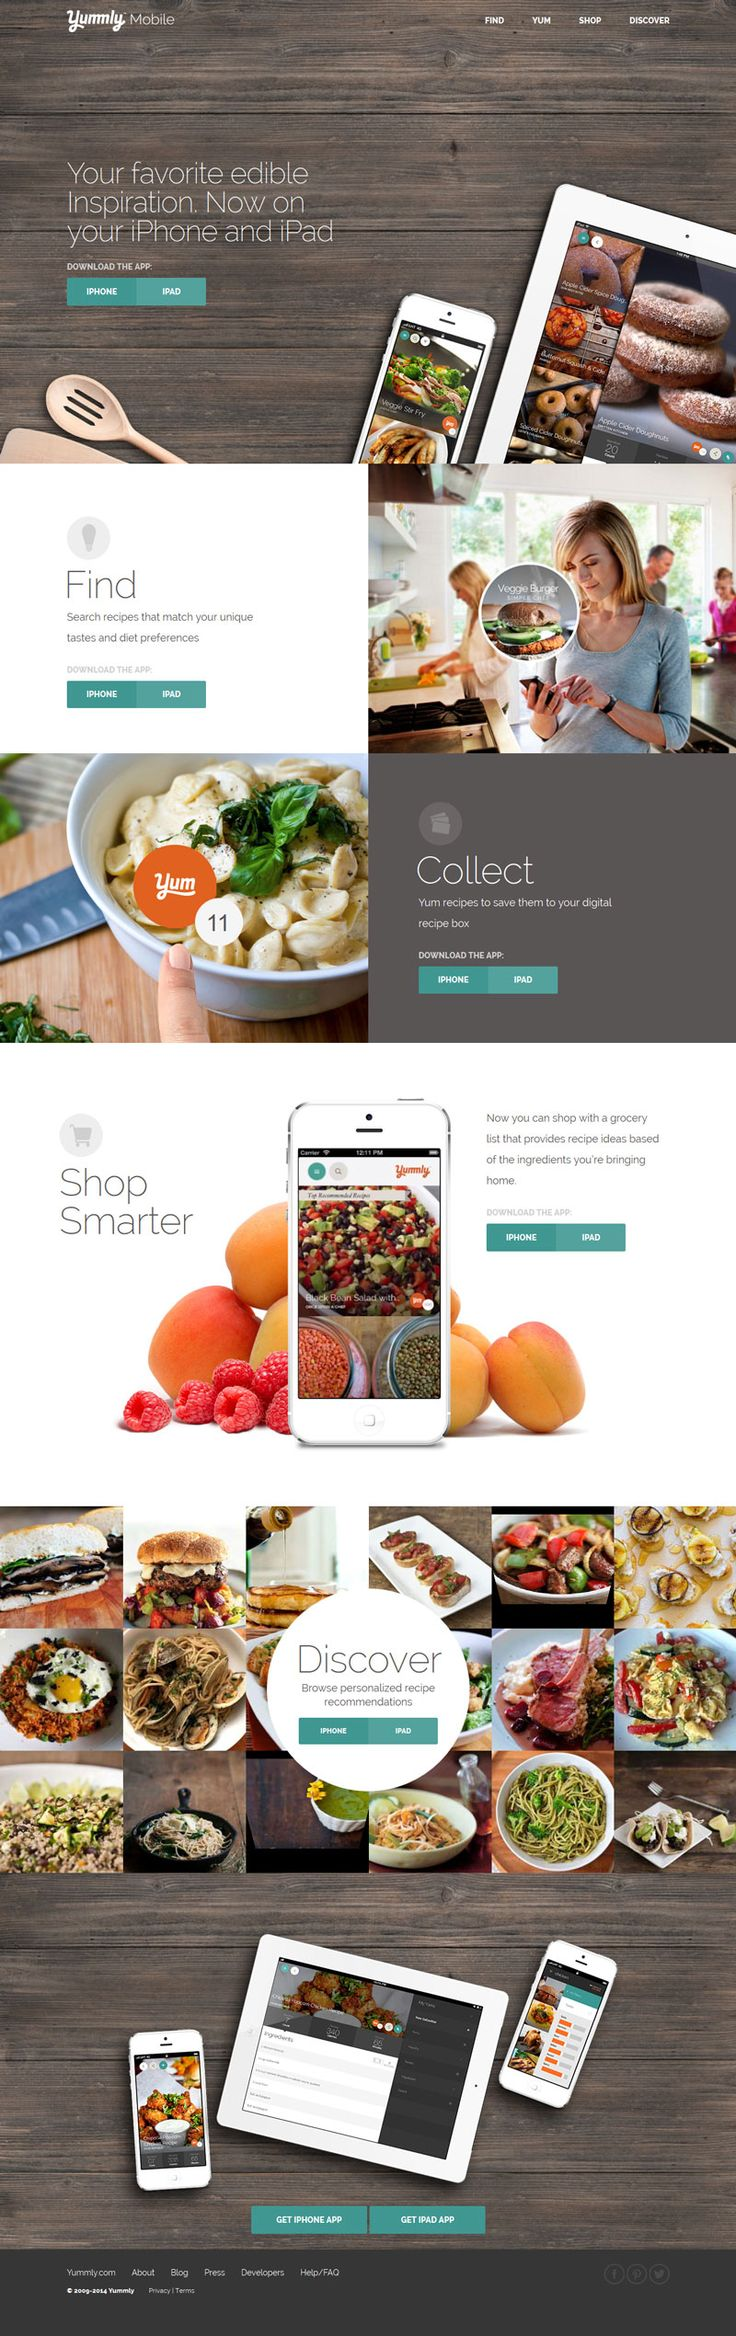 Yumml Mobile, flat design website, wood